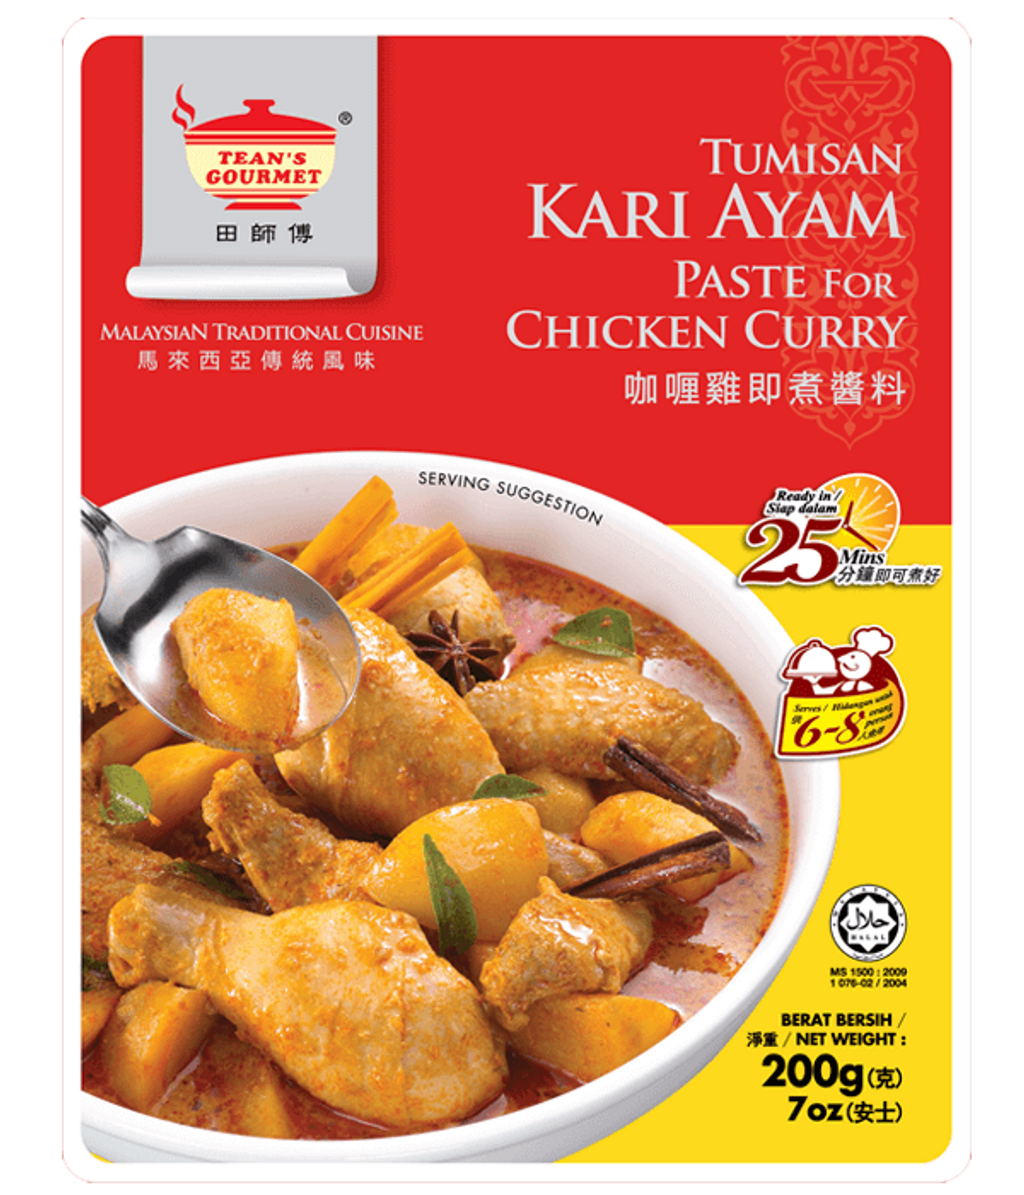 teans gourmet chicken curry paste.png